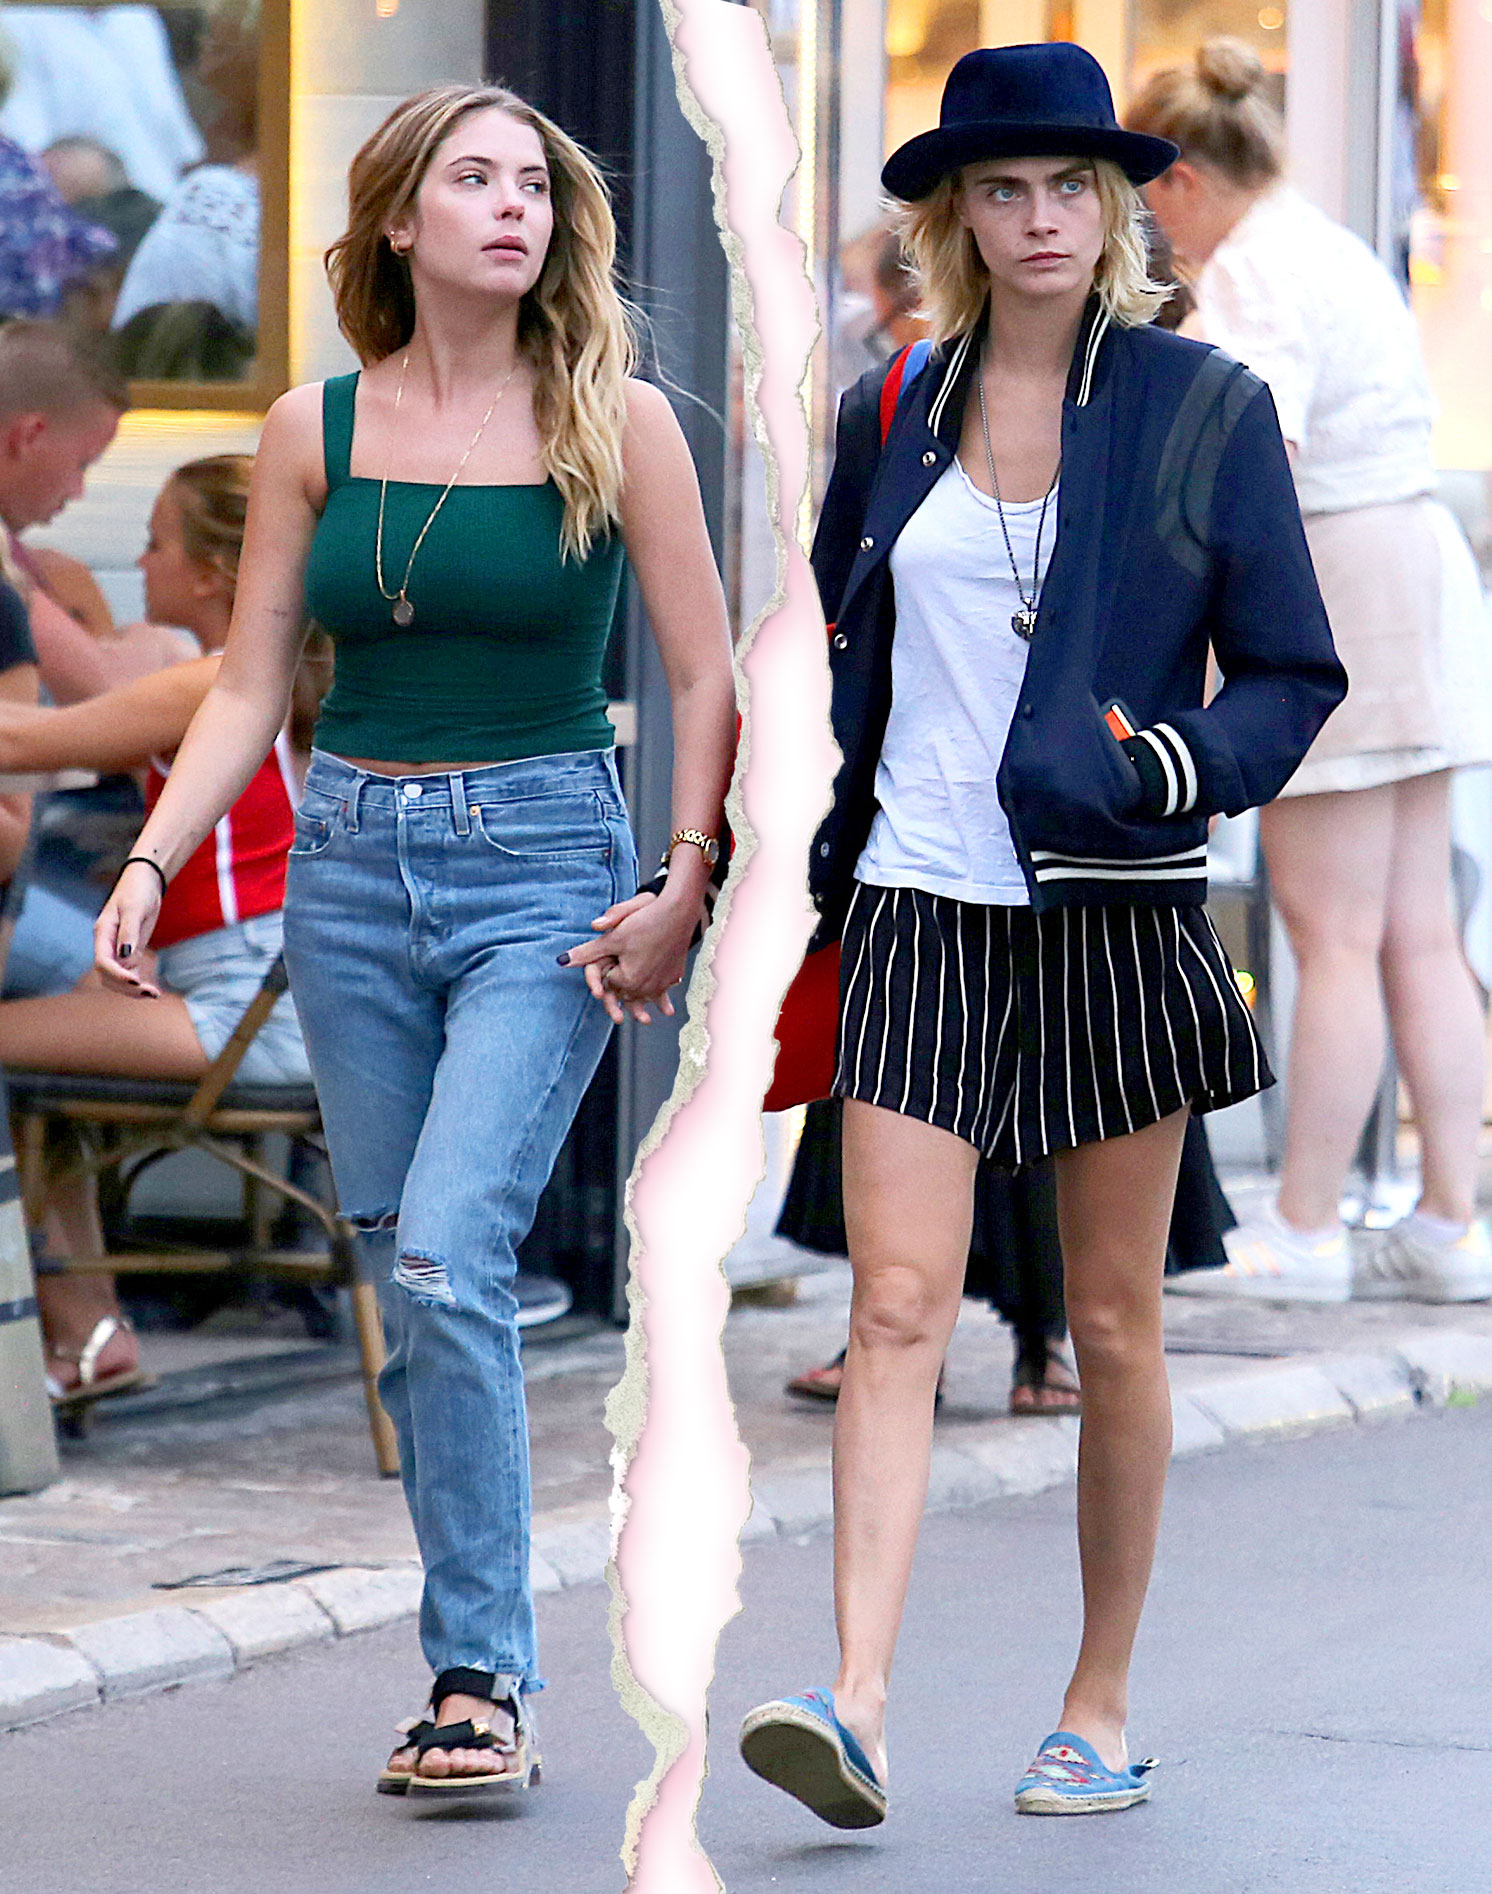 Cara Delevingne And Ashley Benson Break Up After 2 Years Together